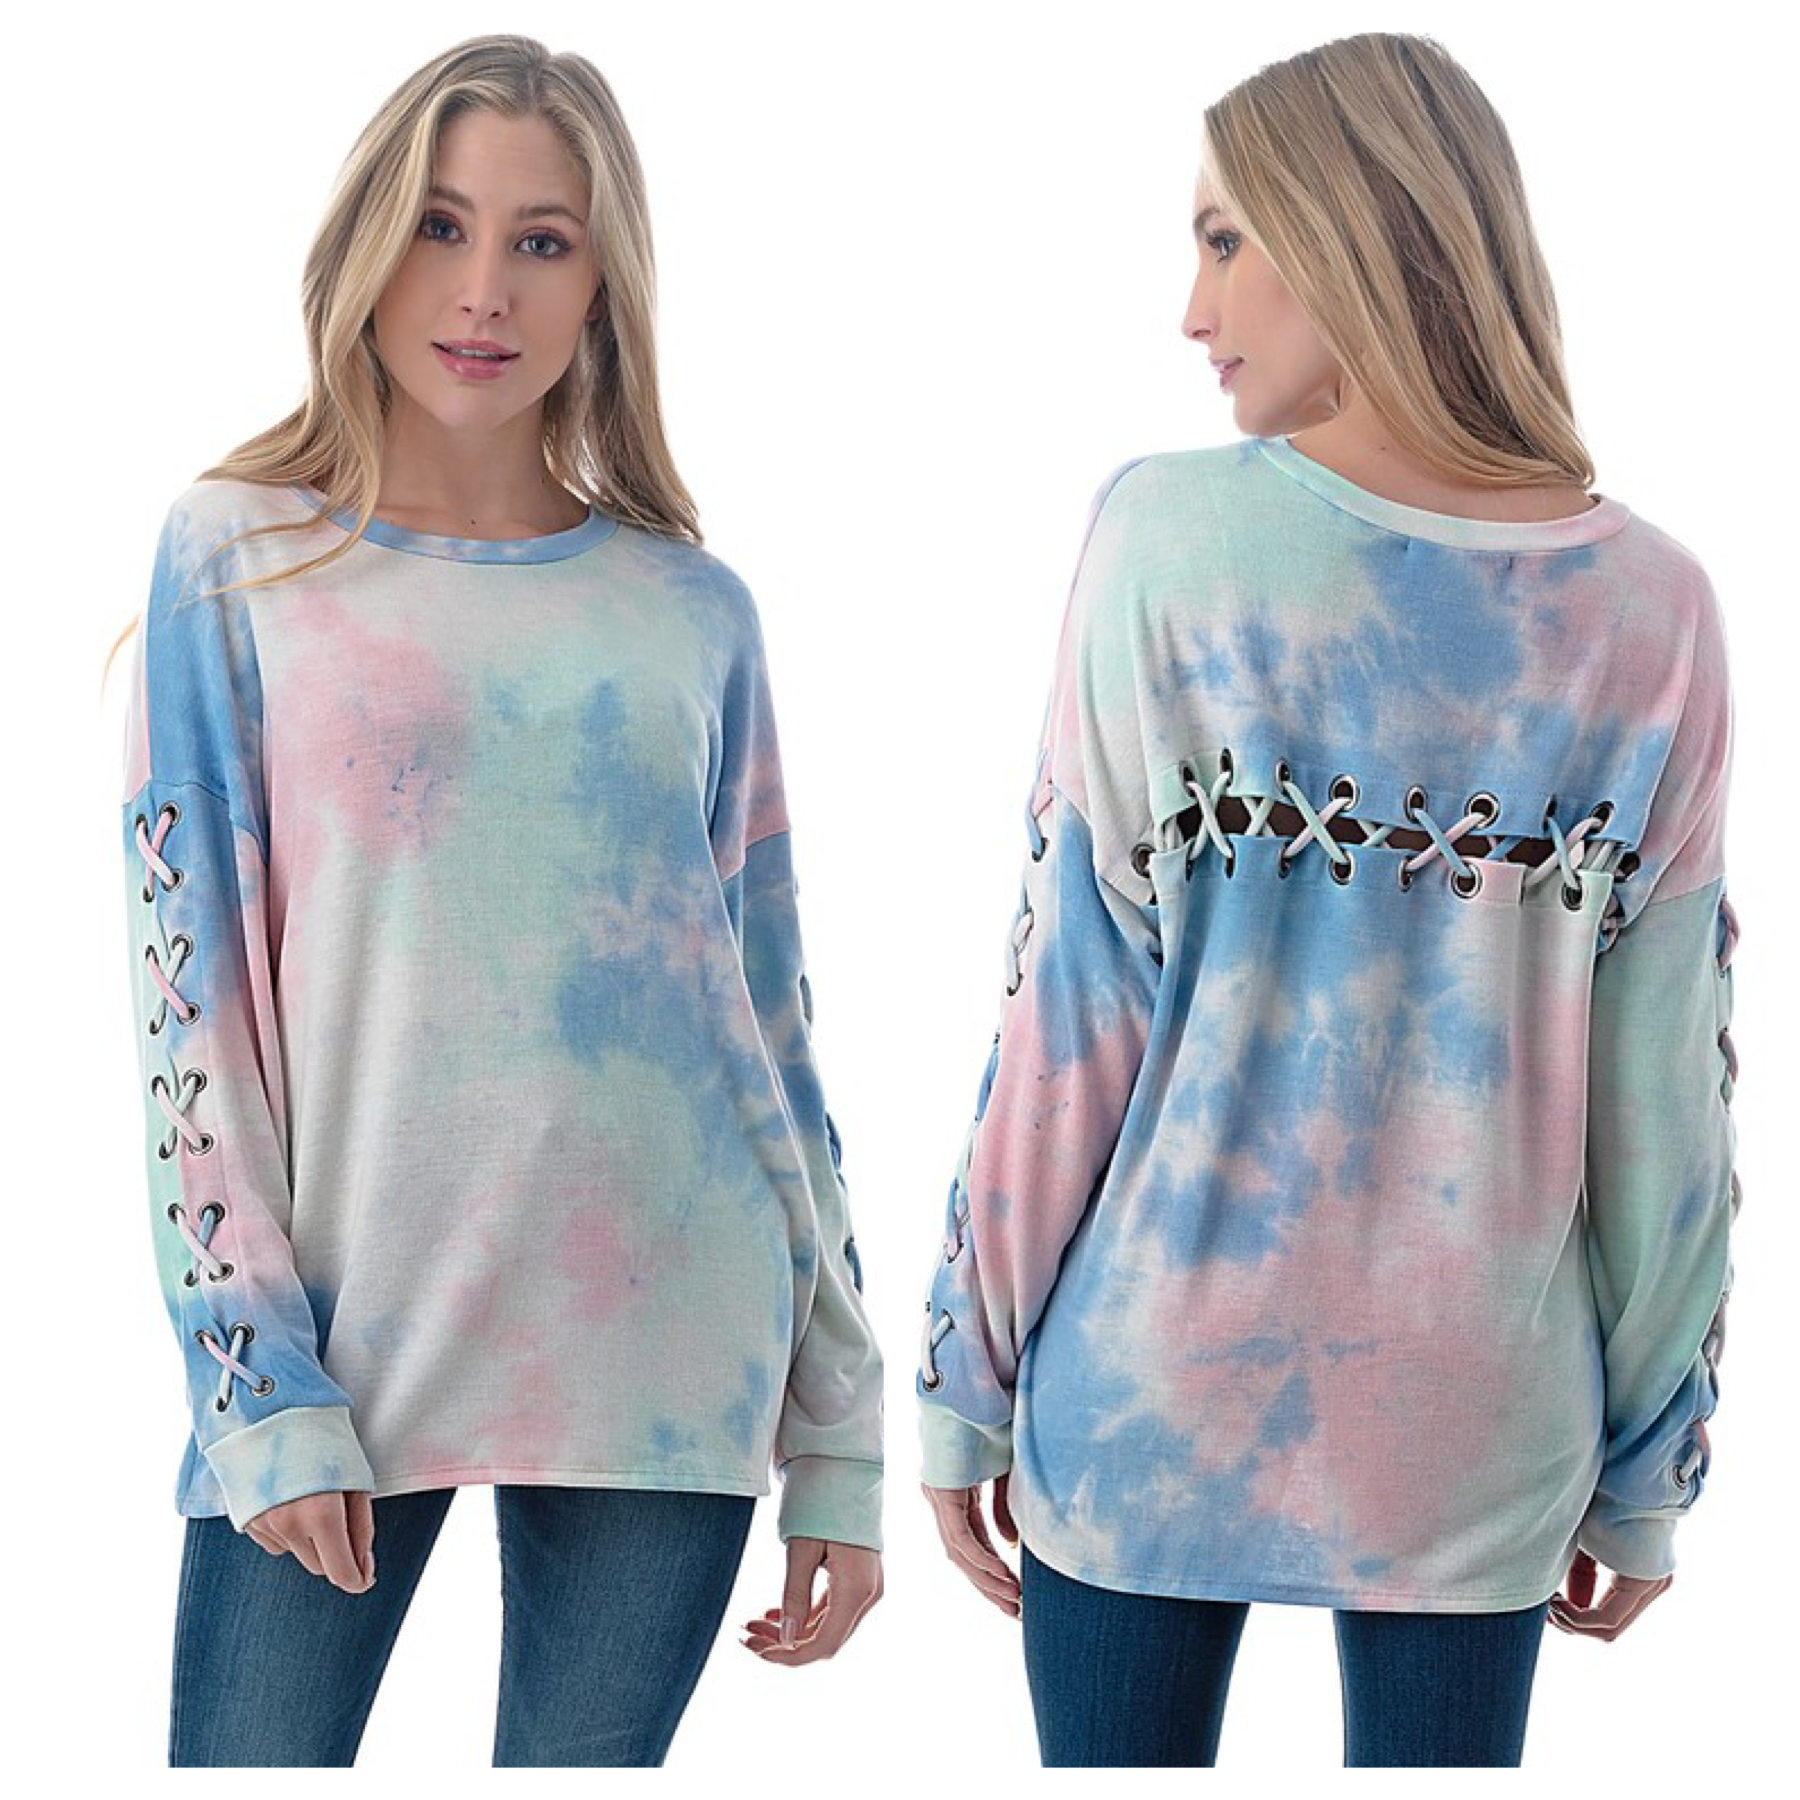 Lace Up Back and Sleeve Top